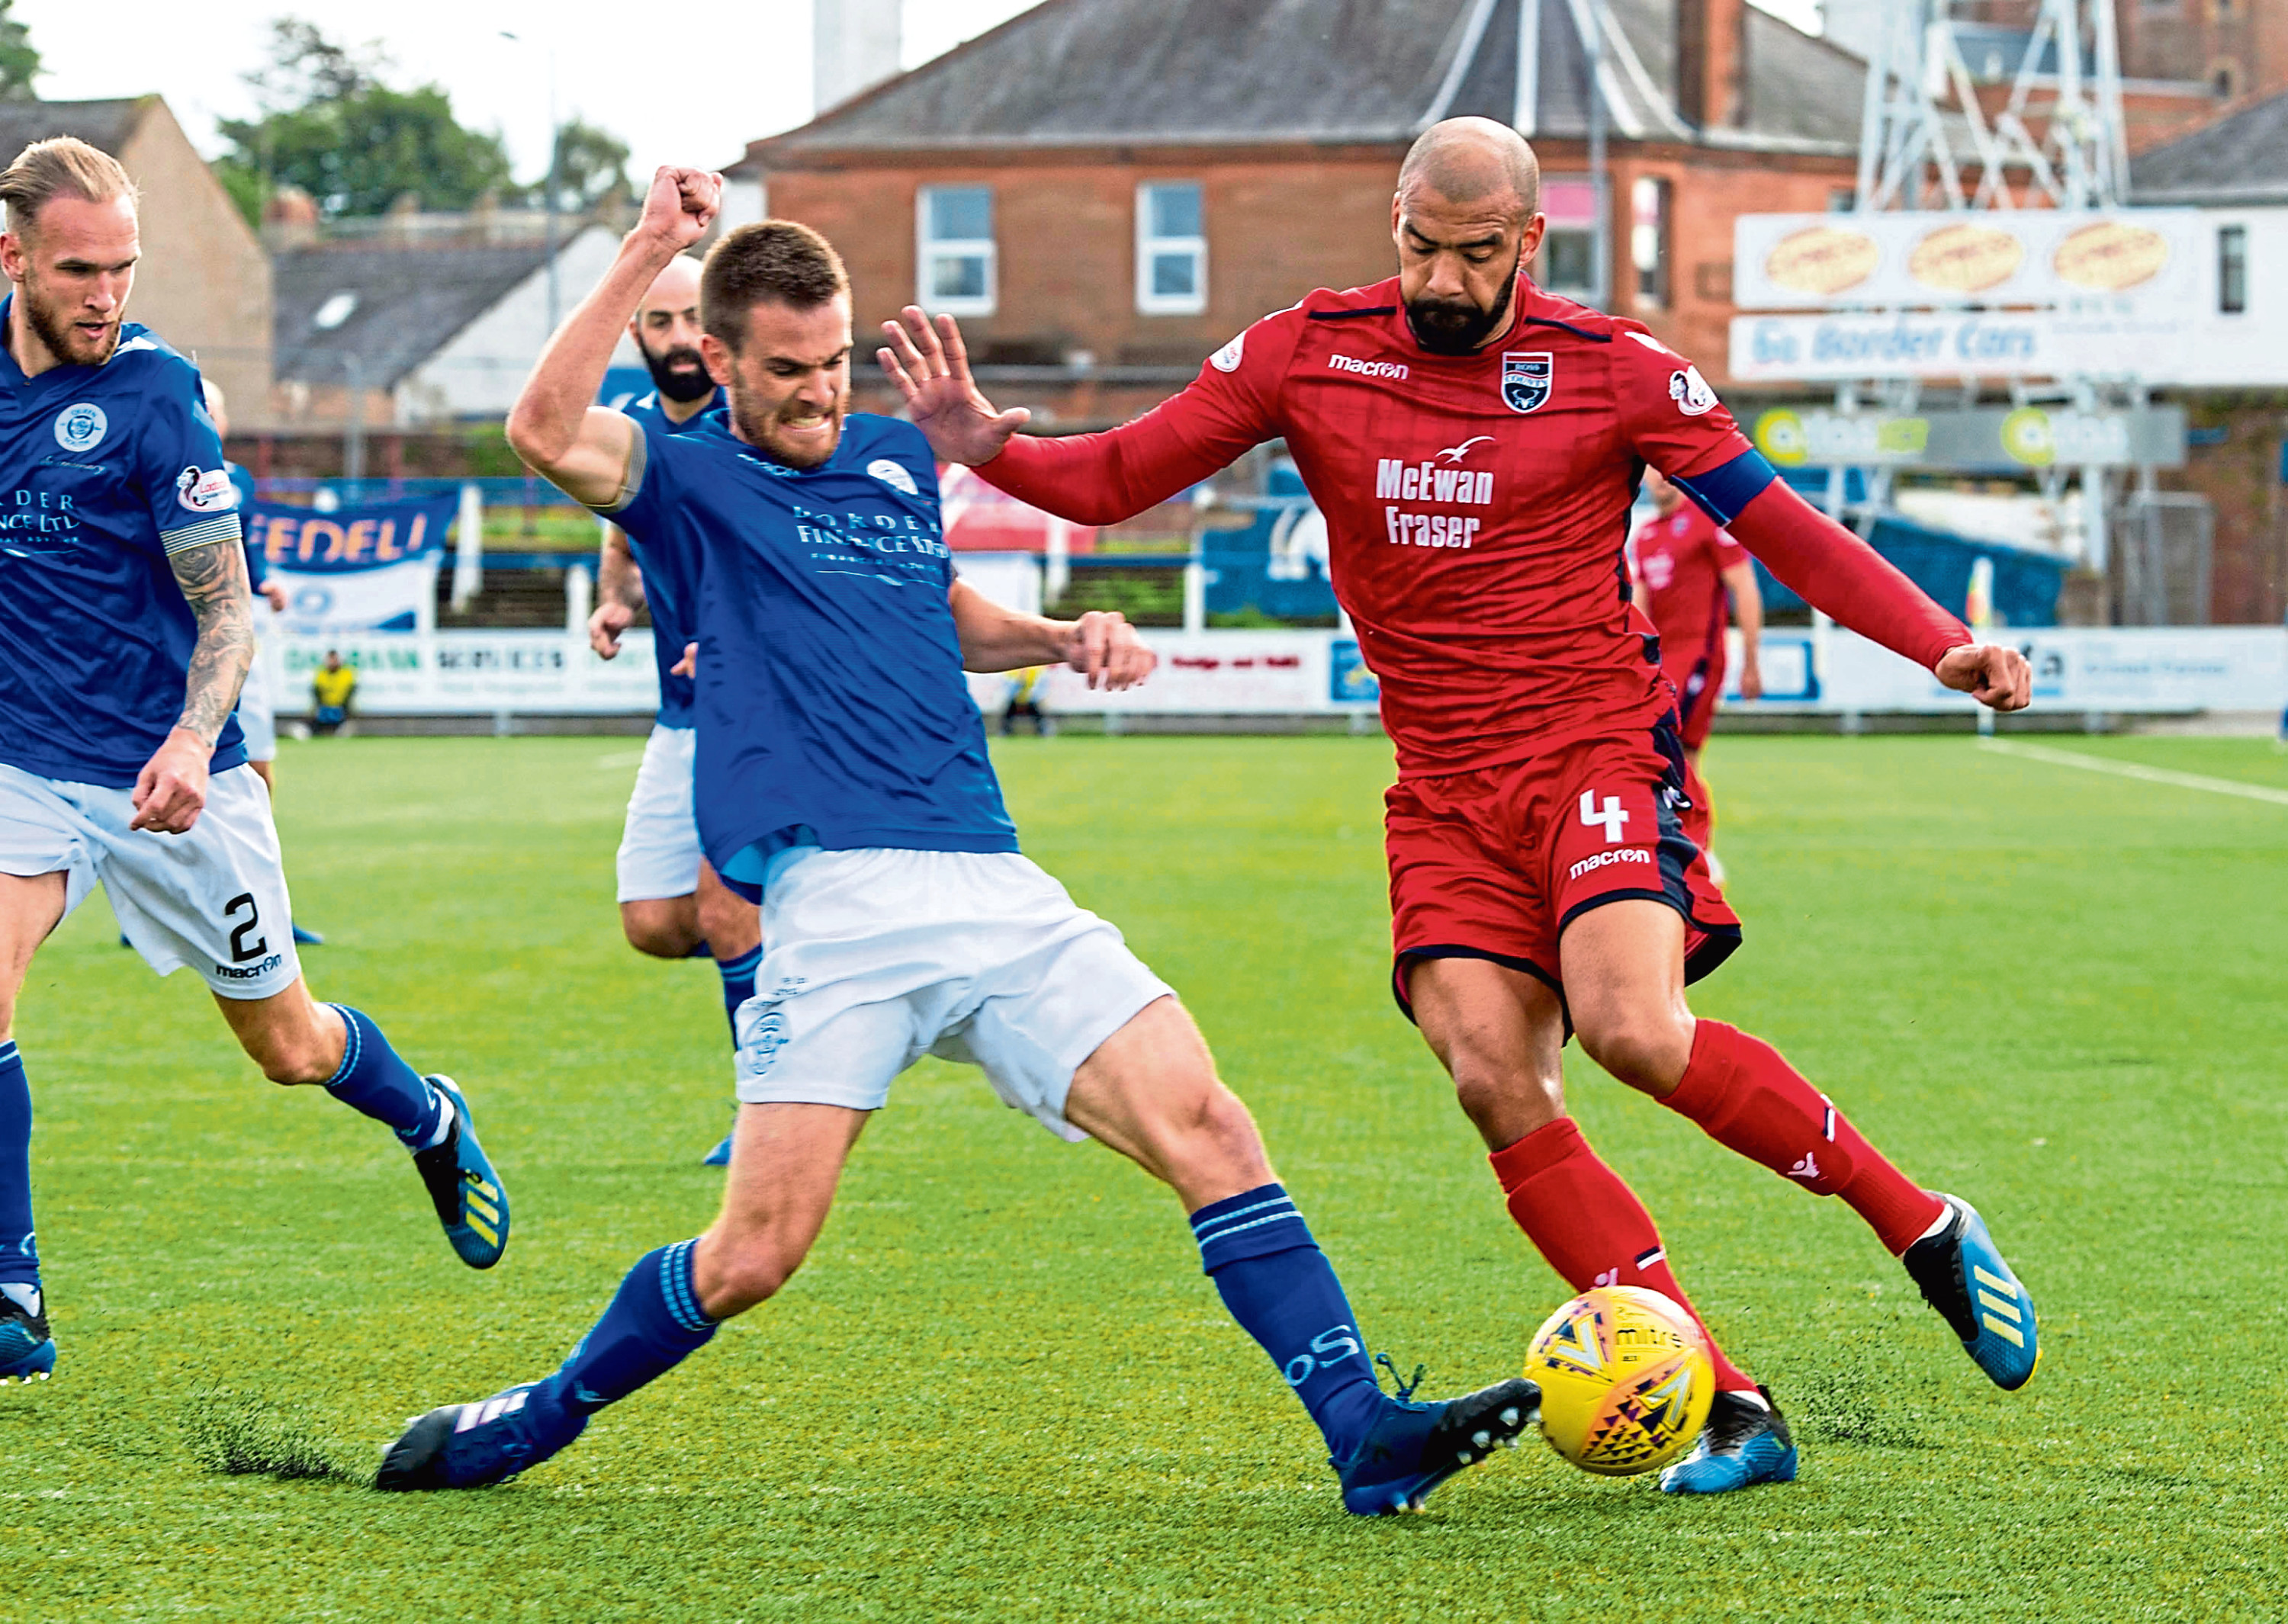 15/09/18 LADBROKES CHAMPIONSHIP   QOTS v ROSS COUNTY (0-0)   PALMERSTON PARK - DUMFRIES   Ross County's Liam Fontaine (right) holds off QOTS' Kyle Jacobs